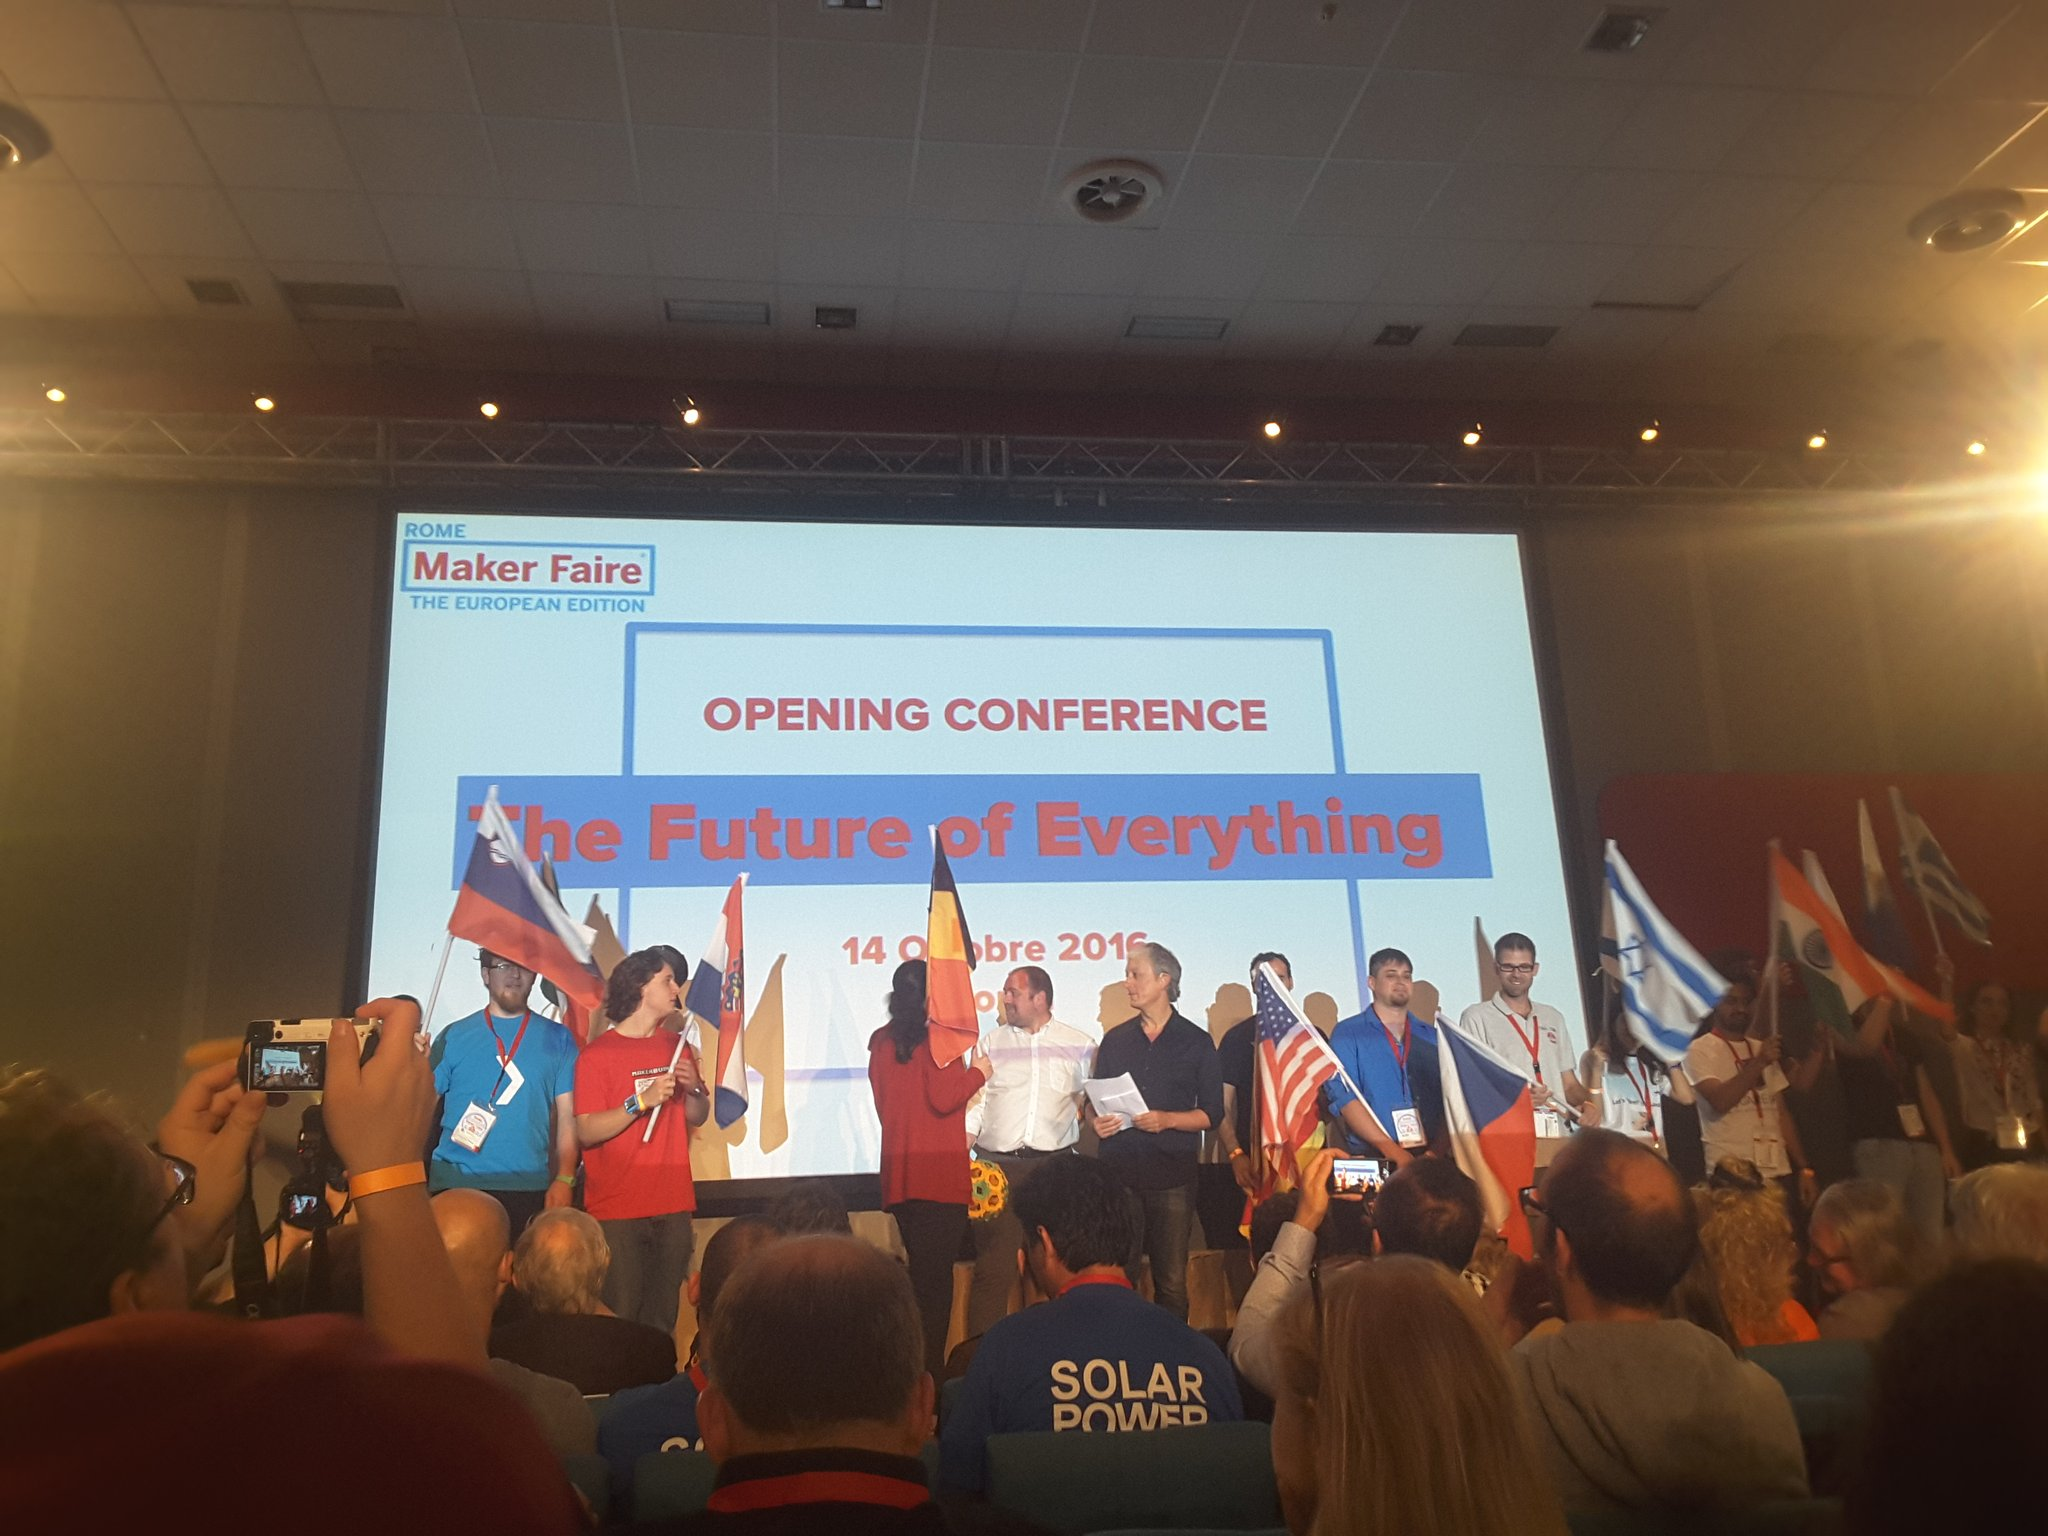 The future of everything and the future of everyone! More than 30 nations present @MakerFaireRome  #MFR16 @RiccardoLuna https://t.co/Dhbg34ur2B